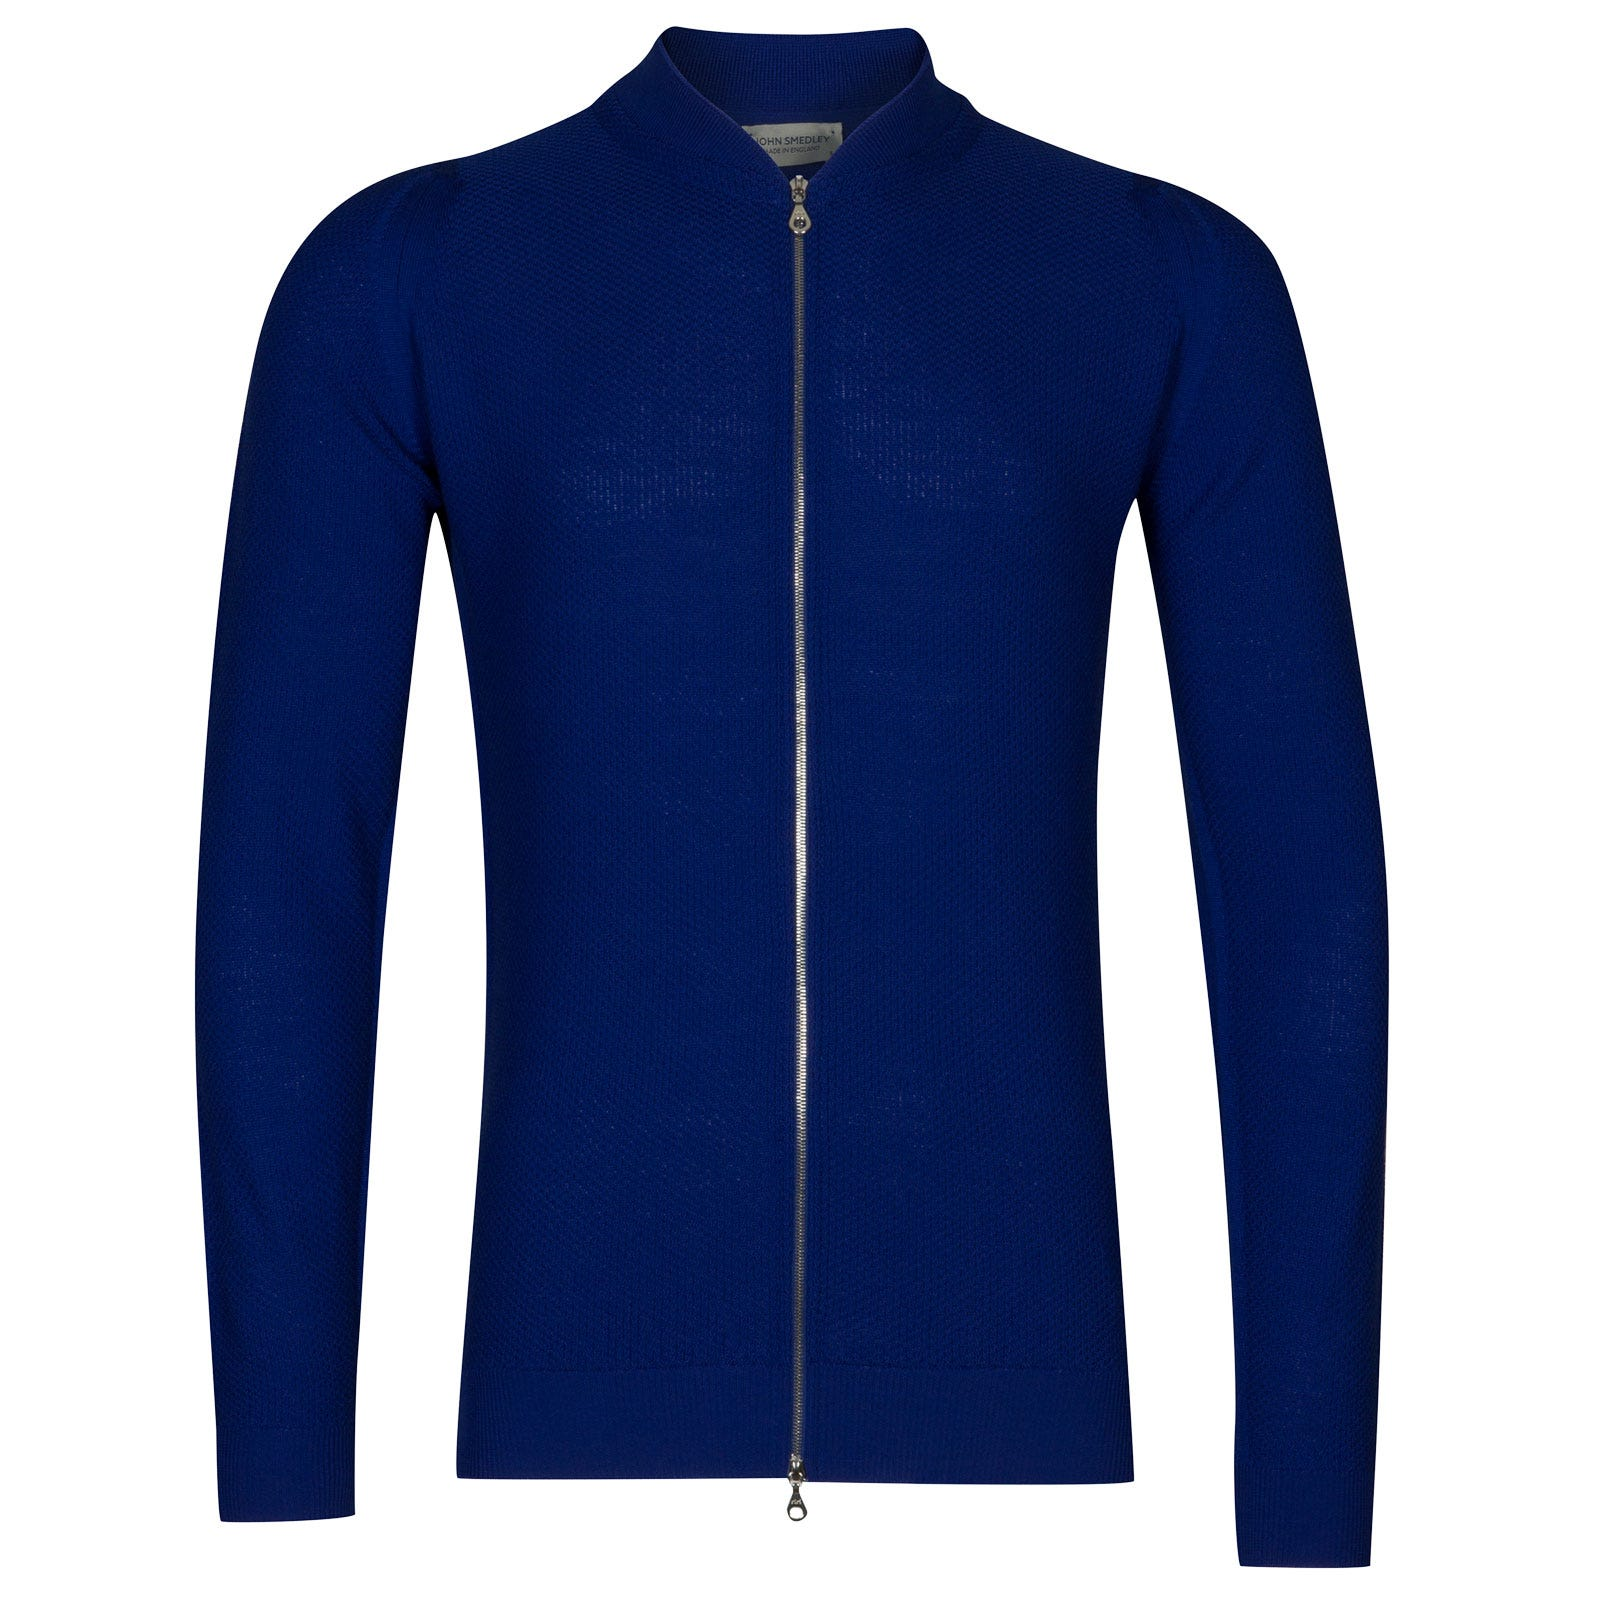 John Smedley 6Singular Merino Wool Jacket in Coniston Blue-M